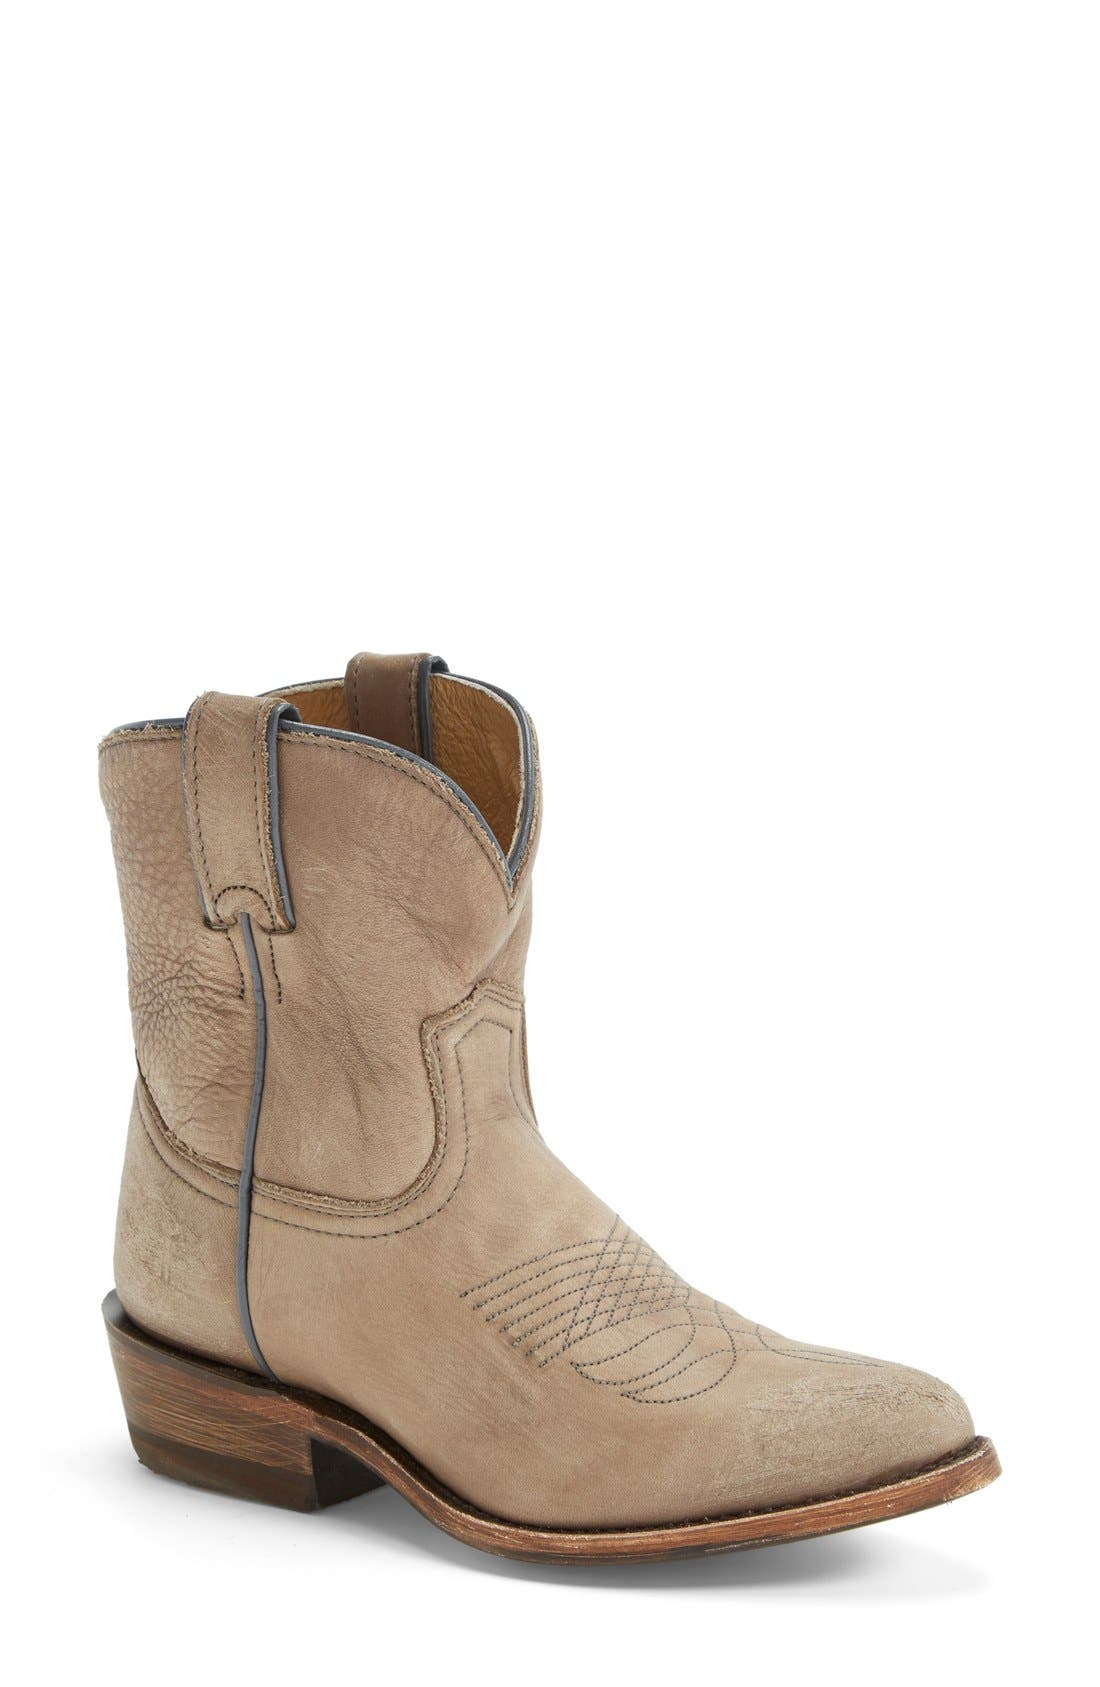 Main Image - Frye 'Billy' Short Boot (Women)